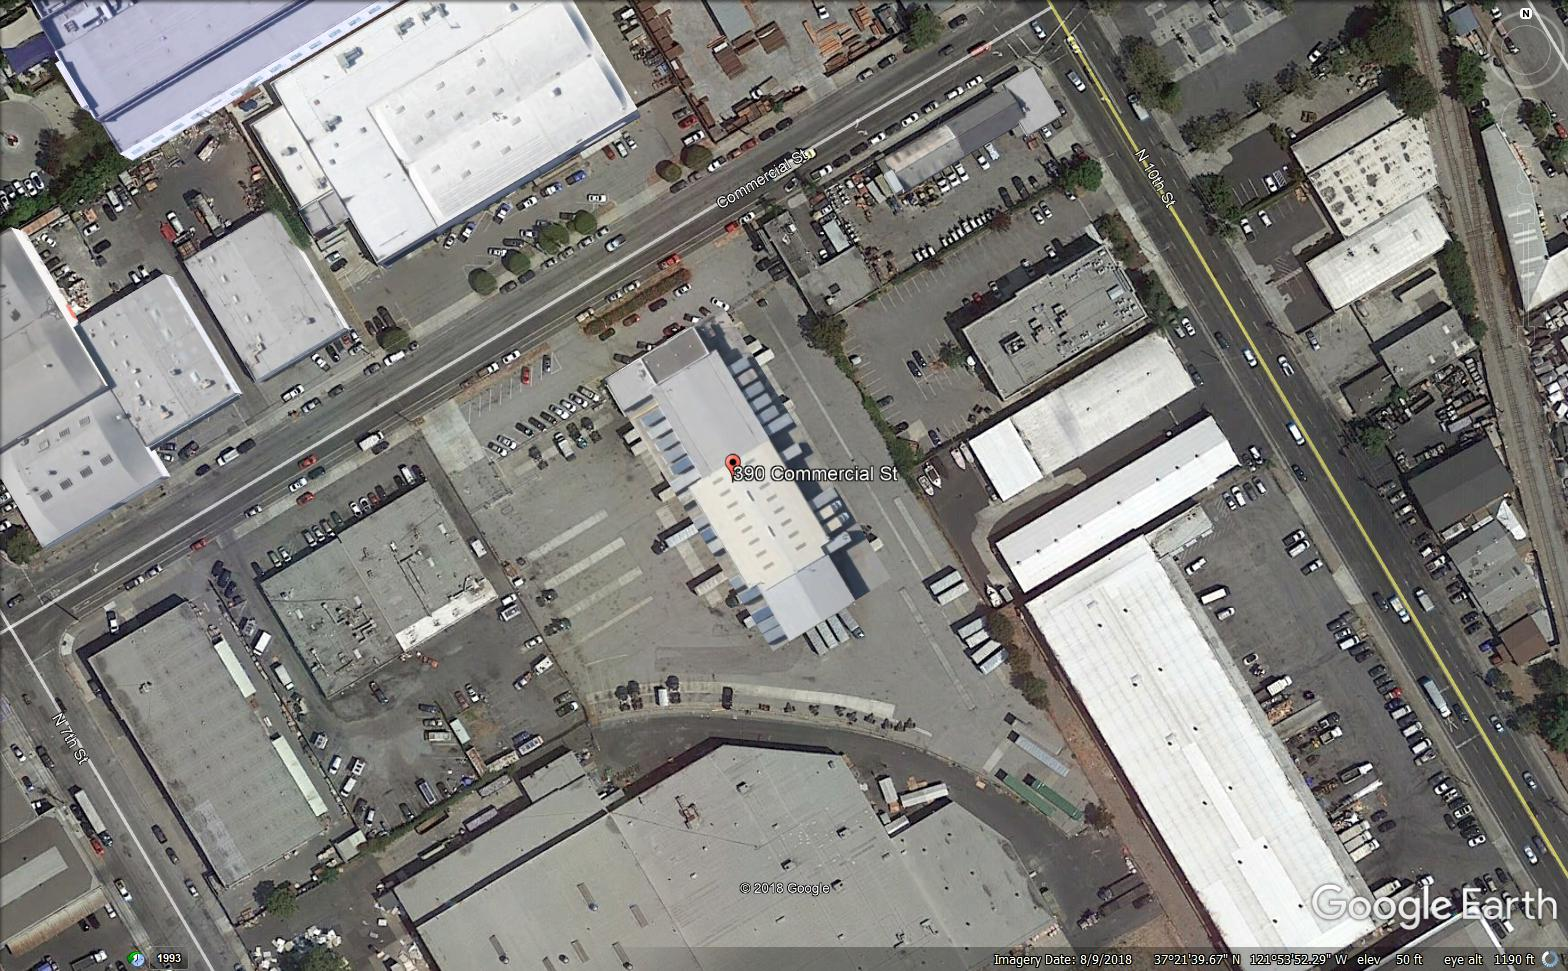 390 Commercial Street San Jose, CA  95112 Image 2